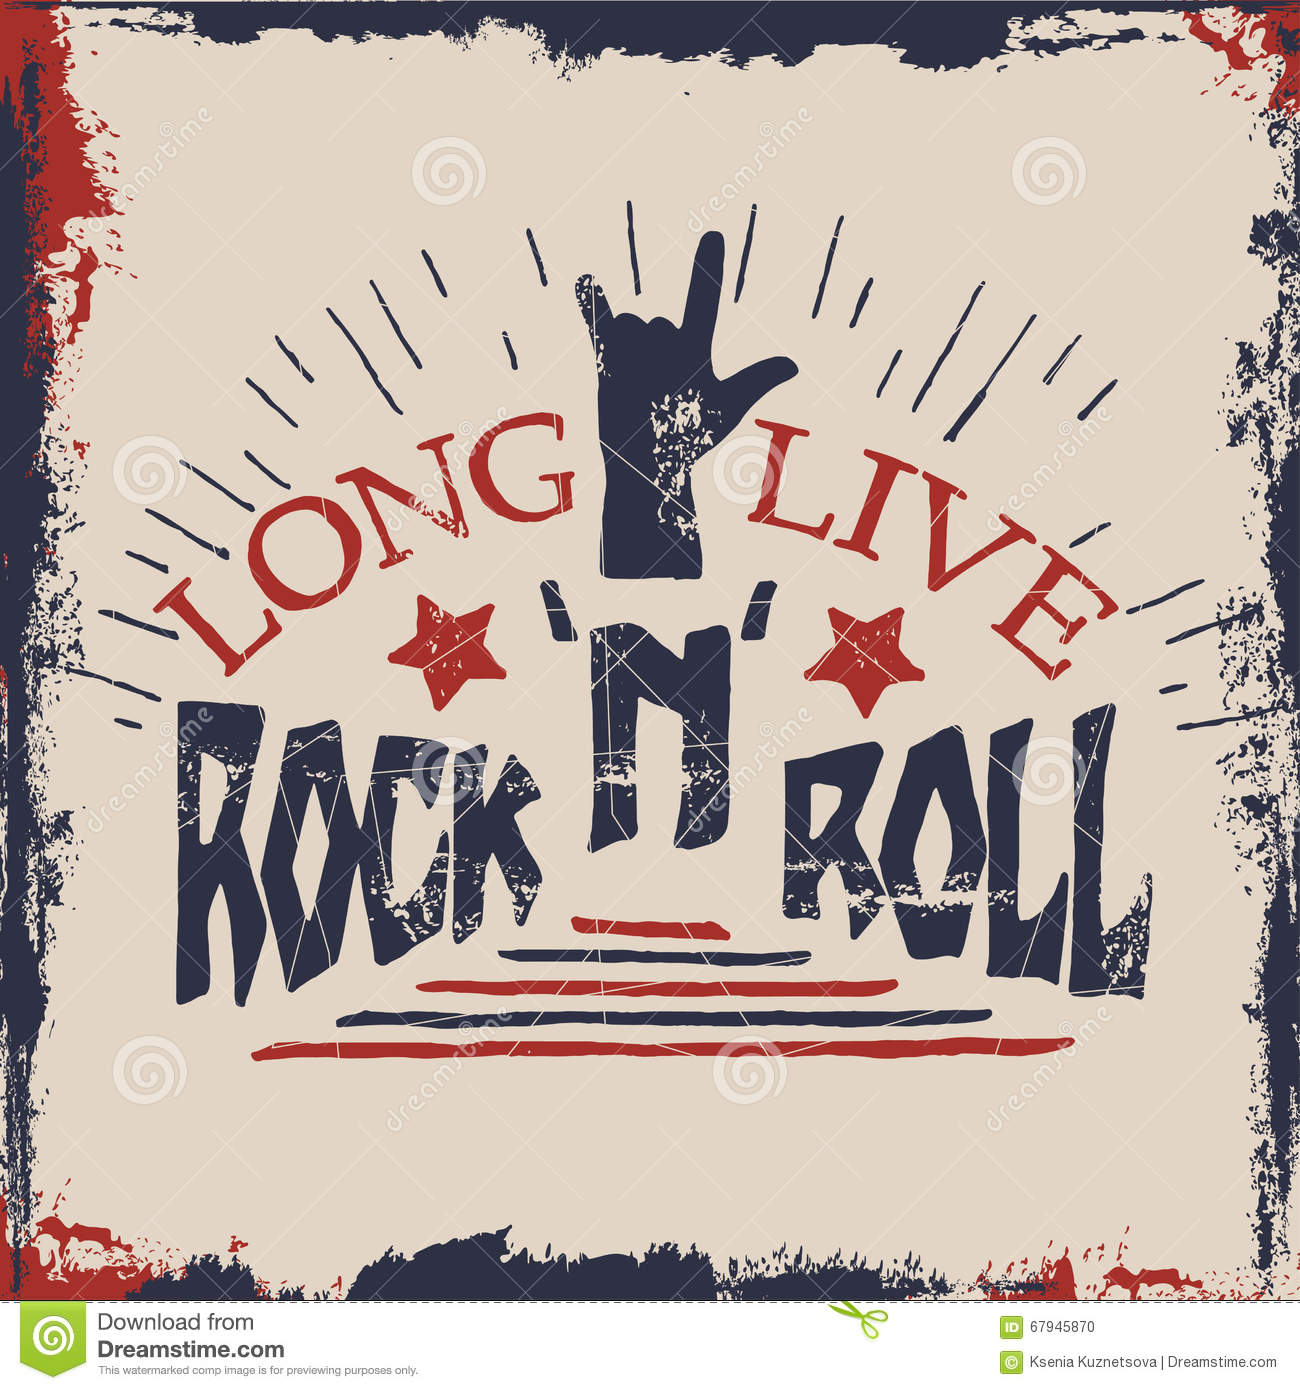 Rock n roll poster design - Concept Hand Lettering Musical Quote Long Live Rock N Roll Label Design For T Shirts Posters Logos Covers Vector